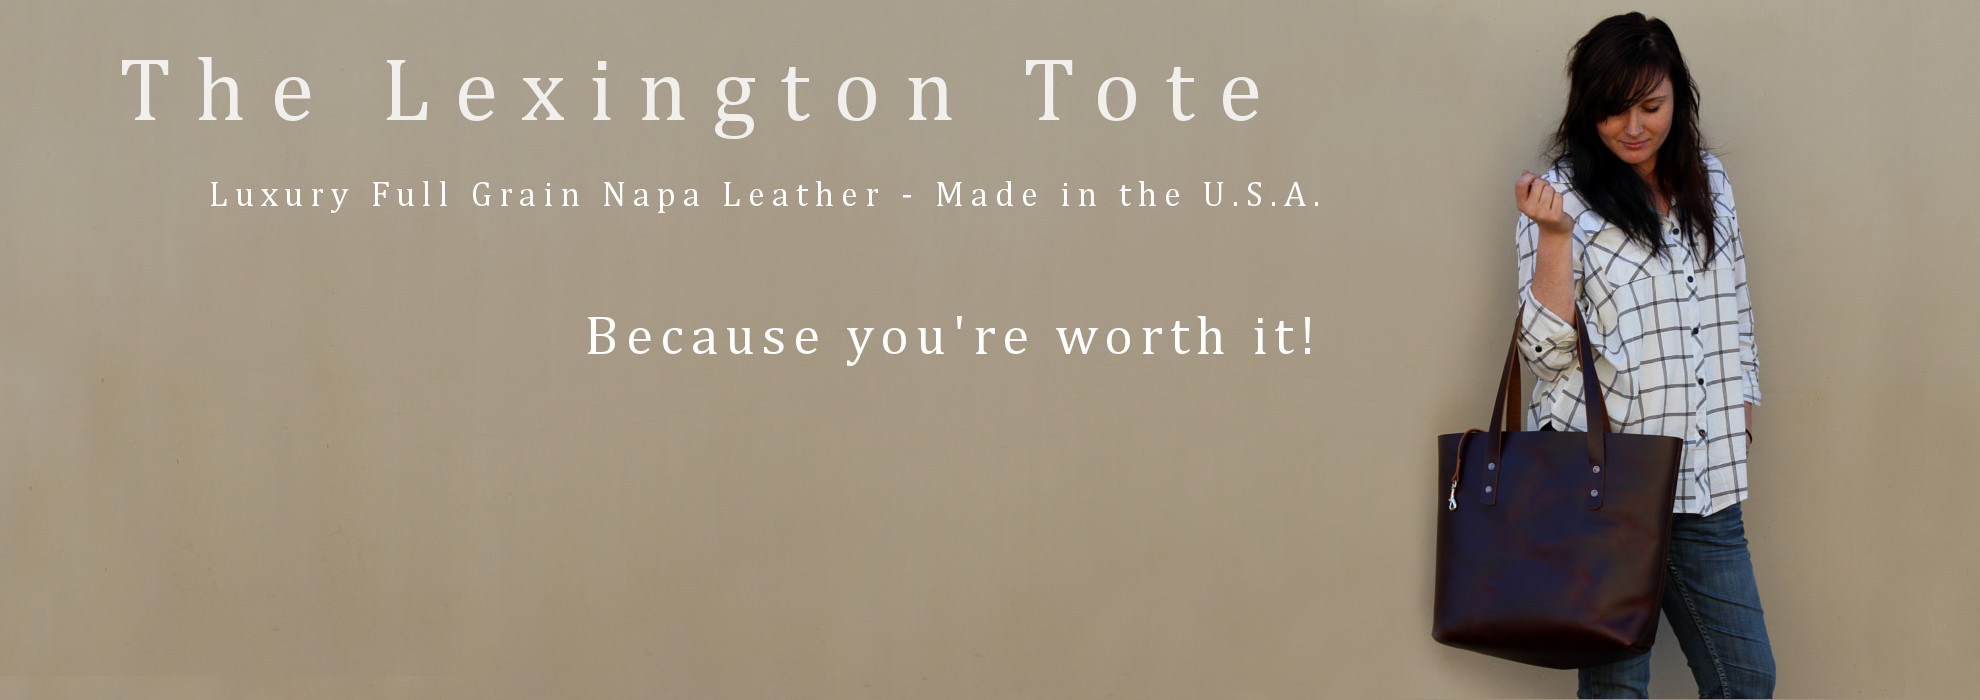 lexington-tote-1.jpg